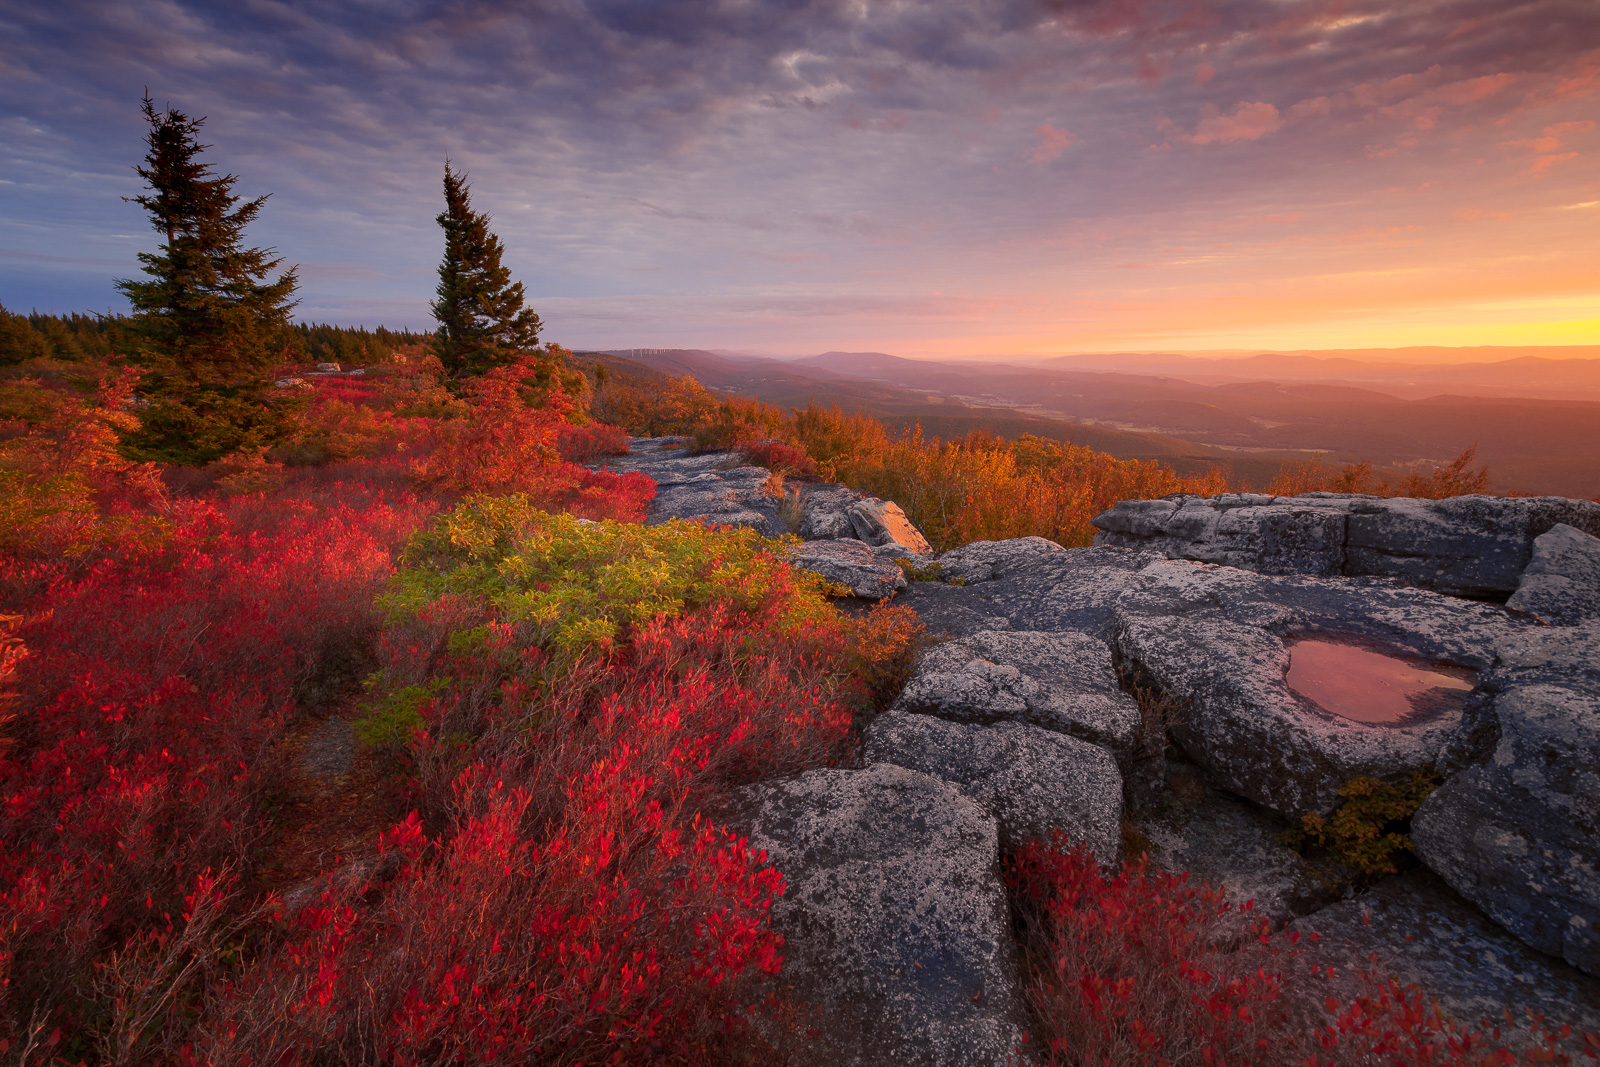 Time stands still high above Canaan Valley, in Dolly Sods, where a flat, windswept expanse of subalpine heath barrens opens up...